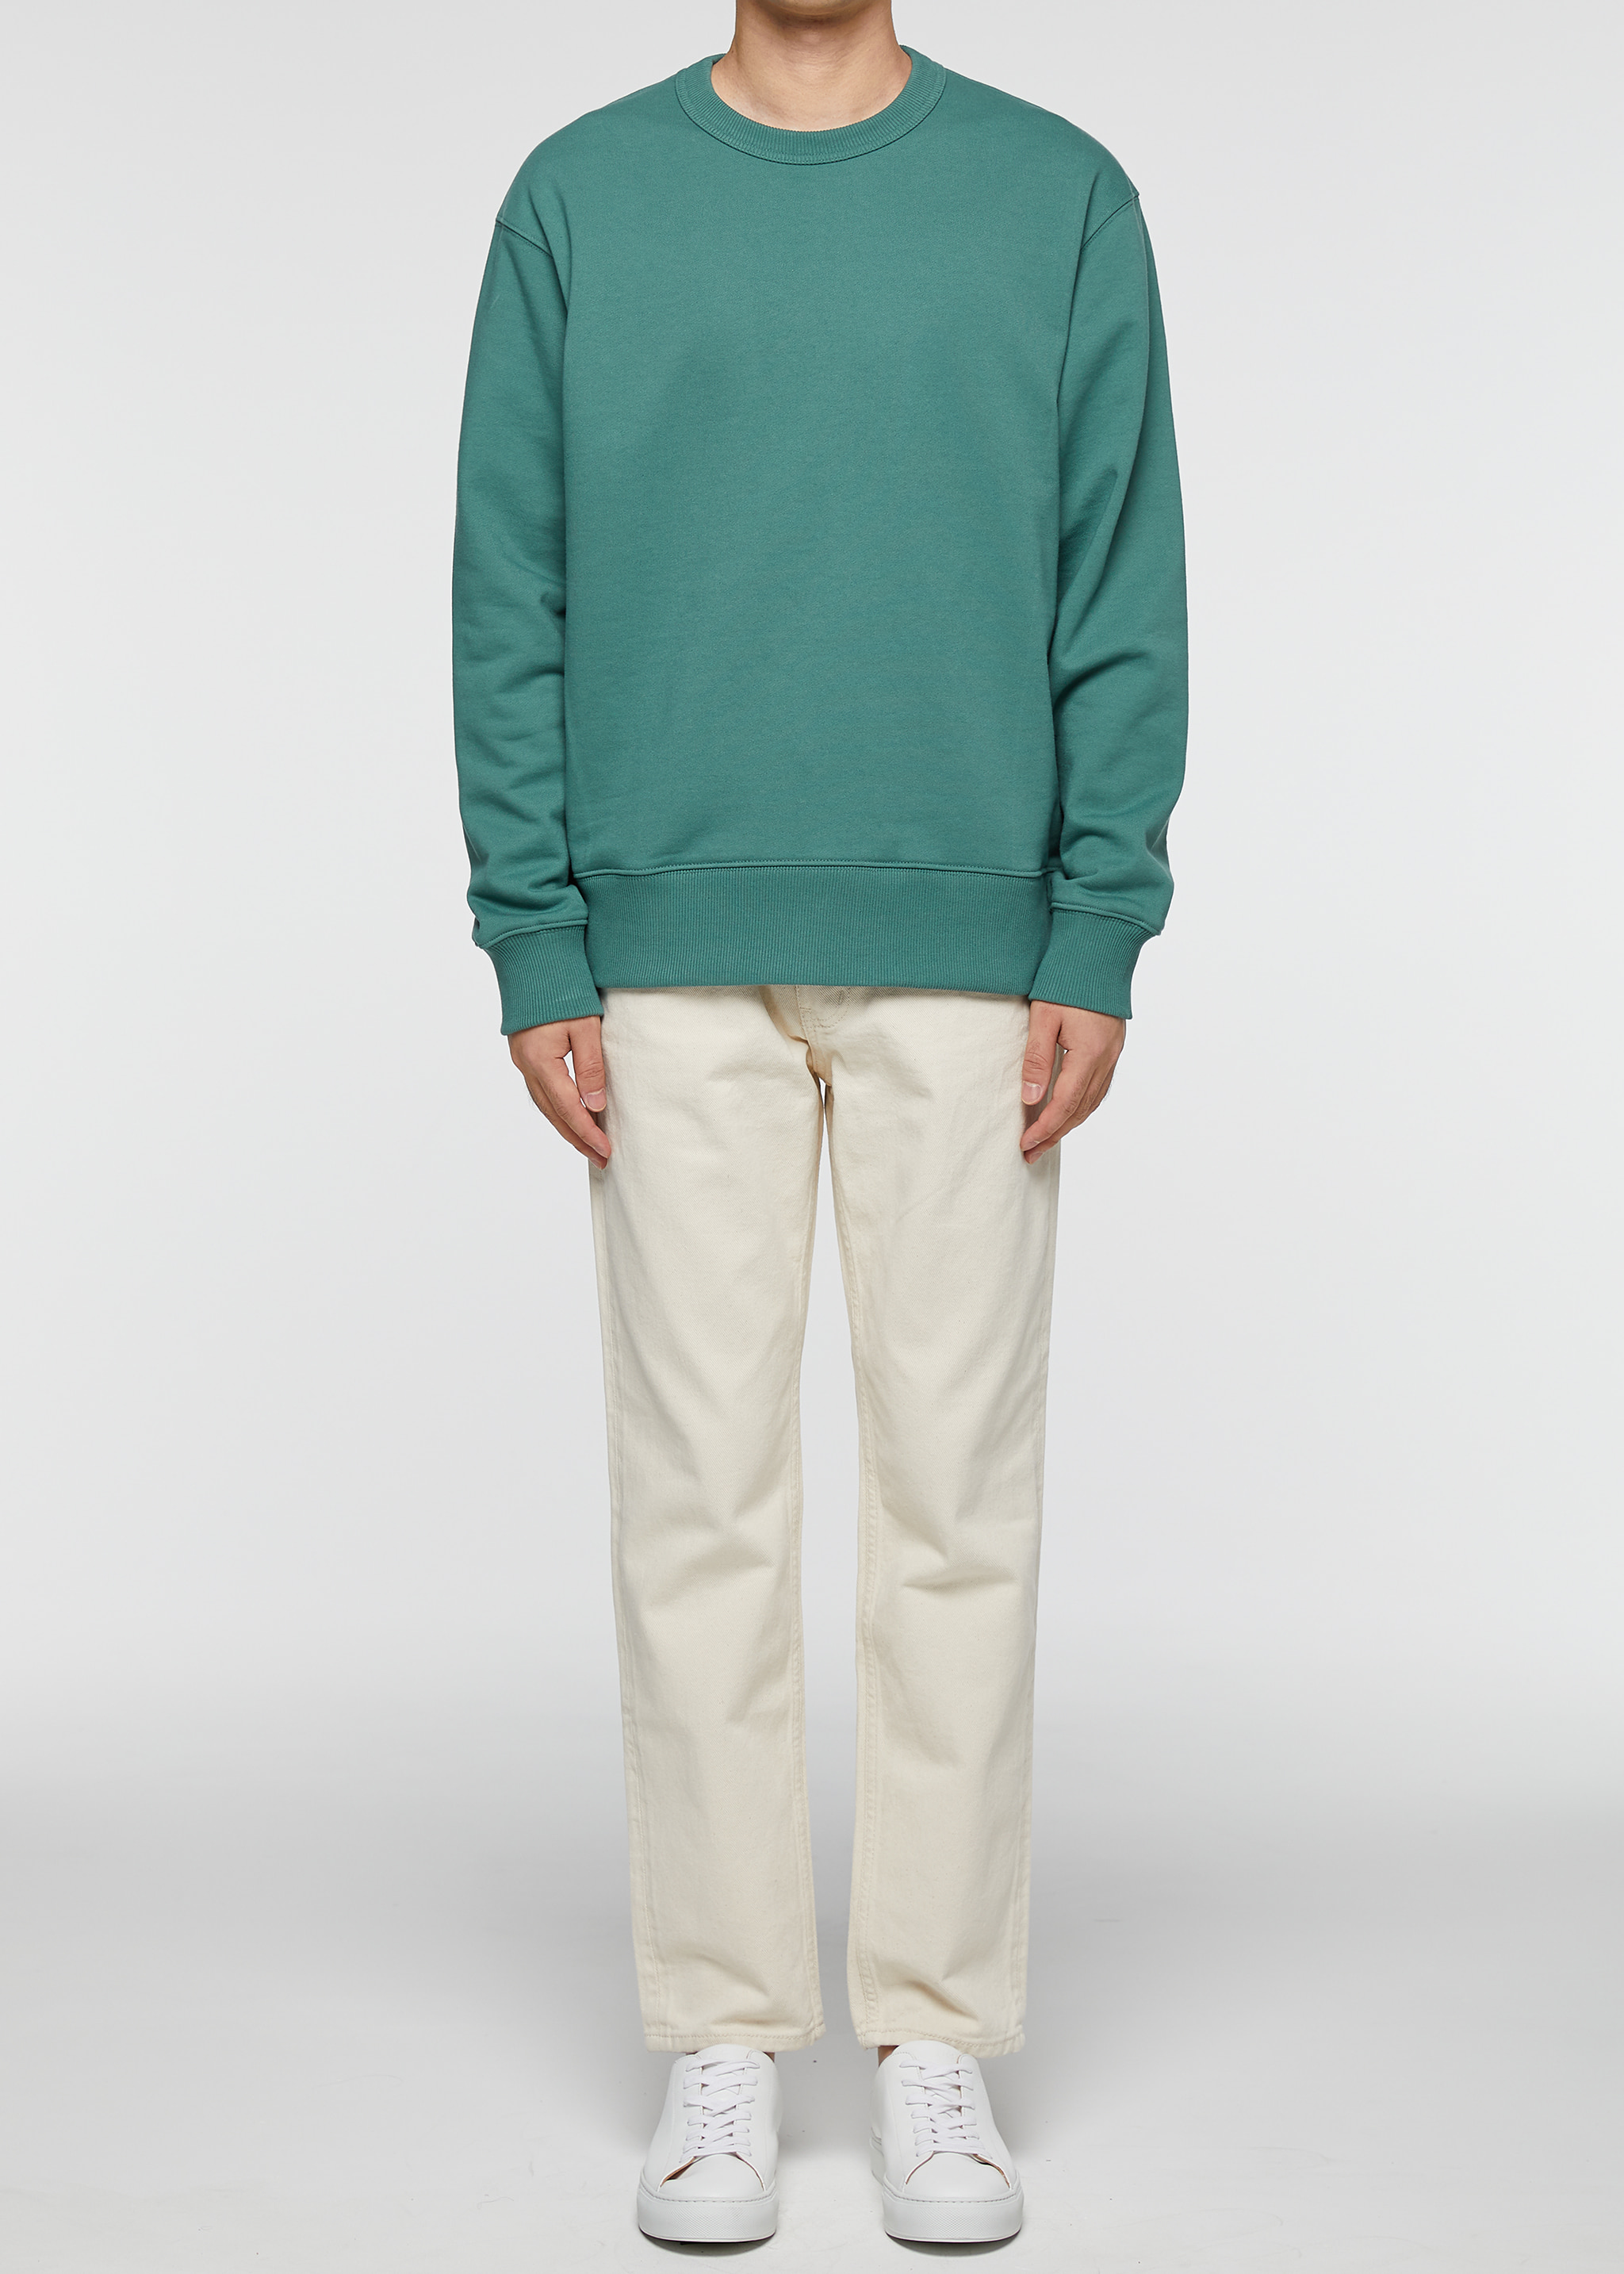 Errday Sweatshirt (Deep Mint)